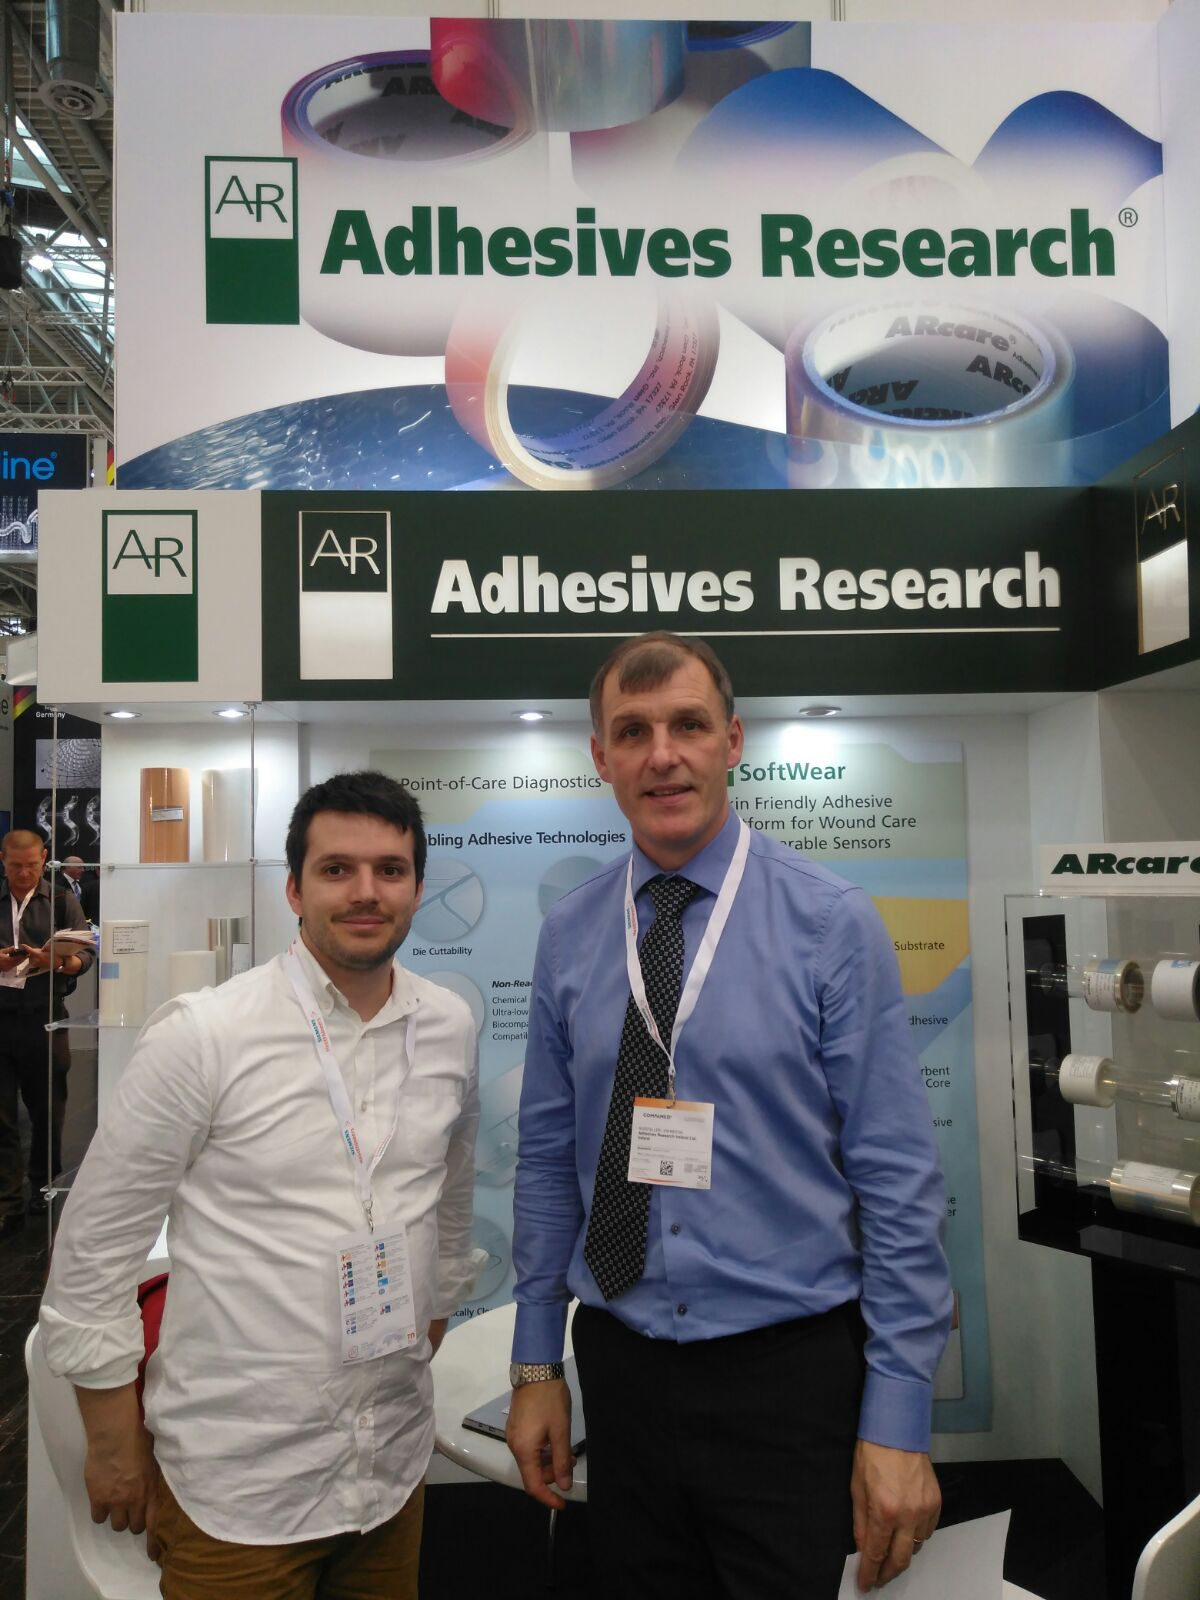 Michael_Adhesives Research